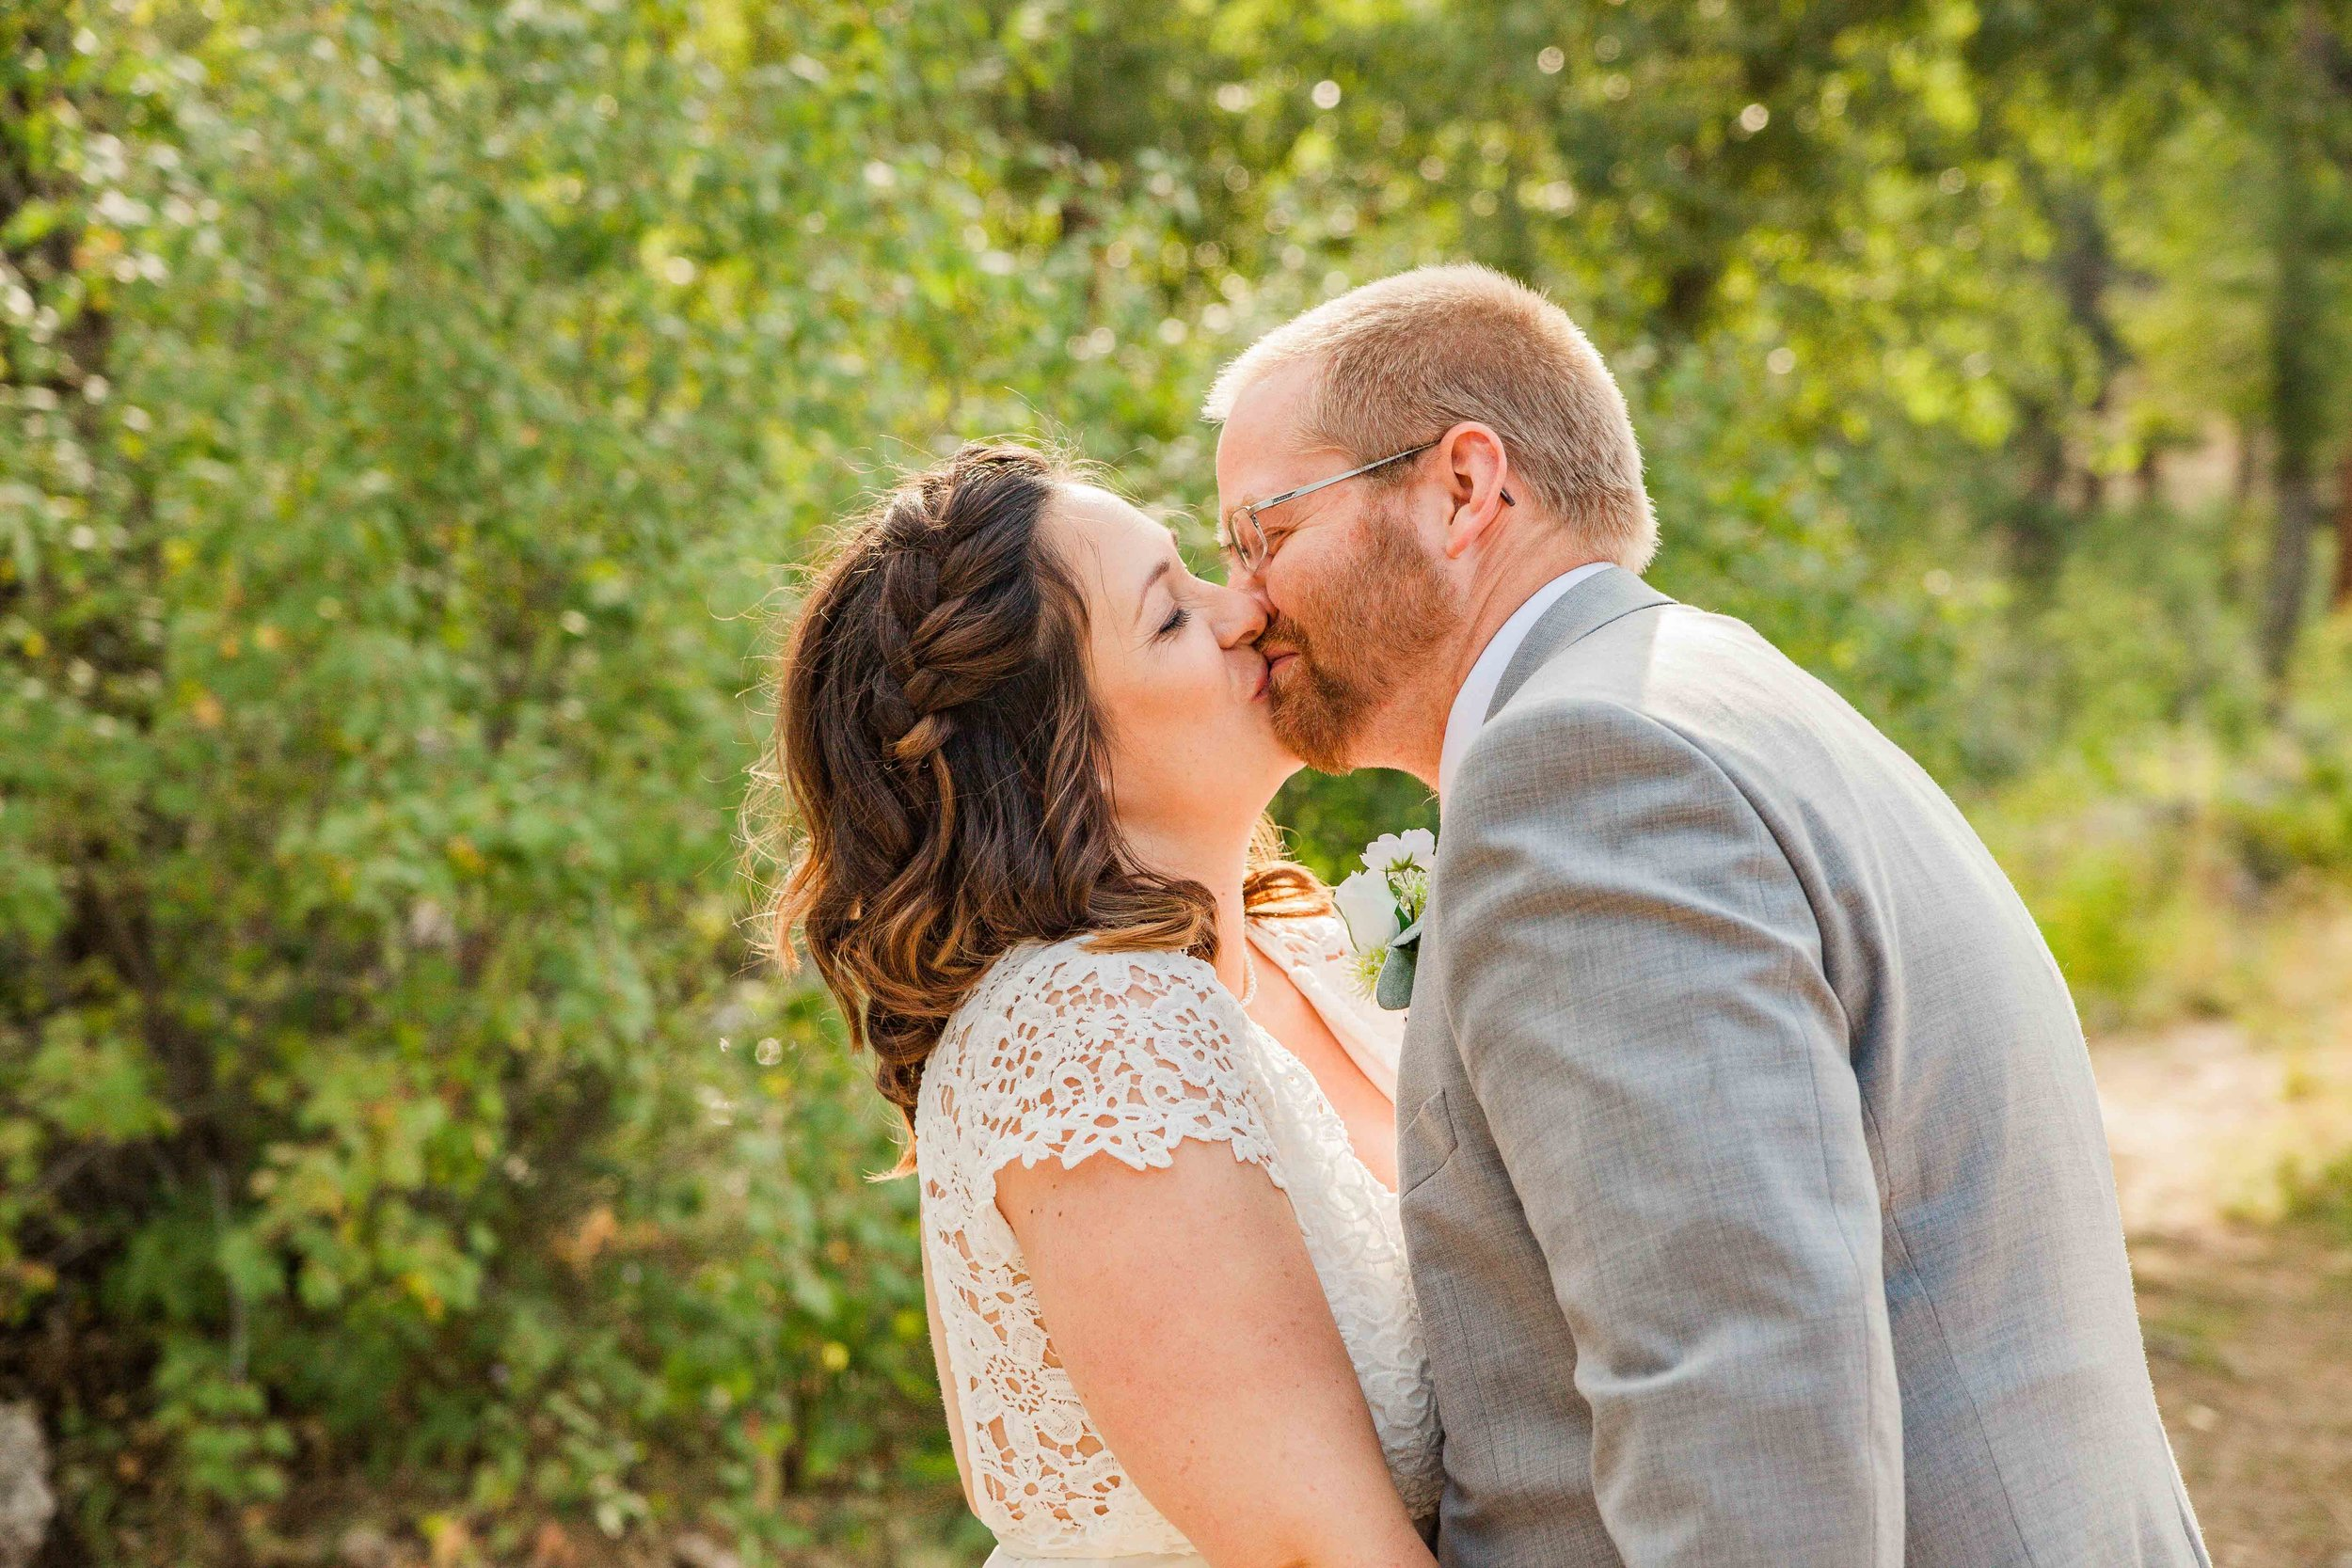 Kerns Photography - Weddings